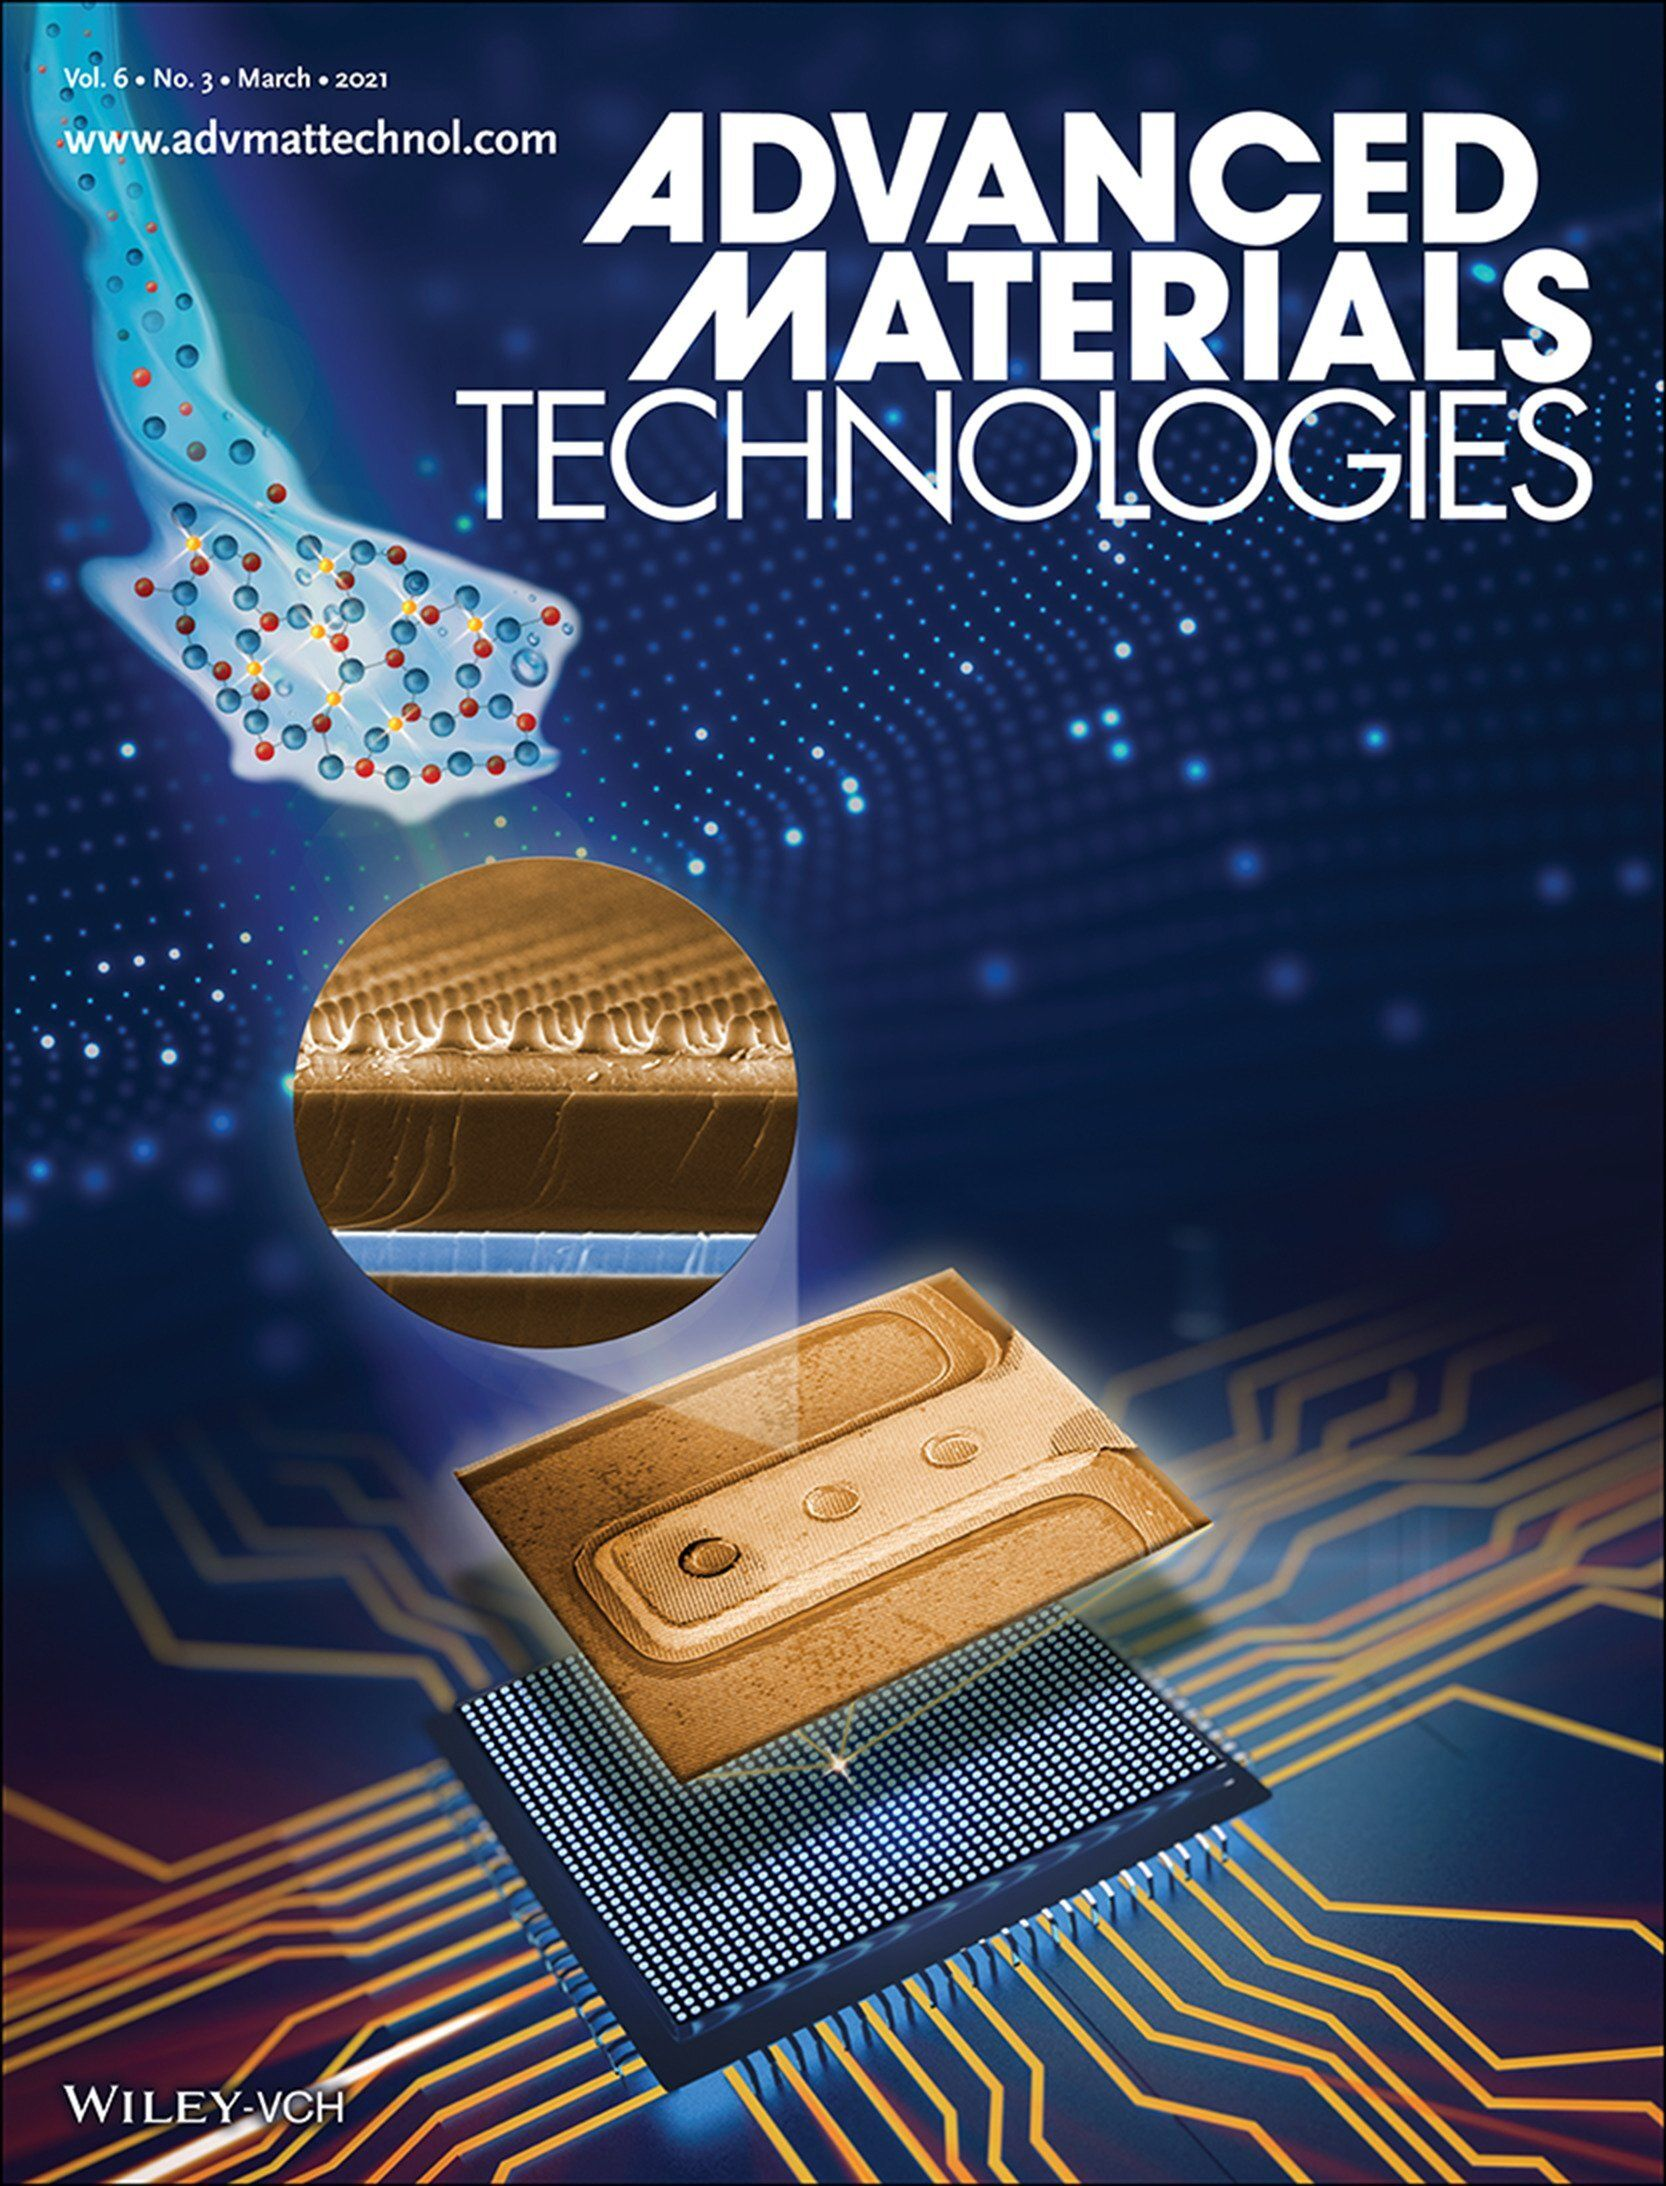 Cover in Advanced Materials Technology